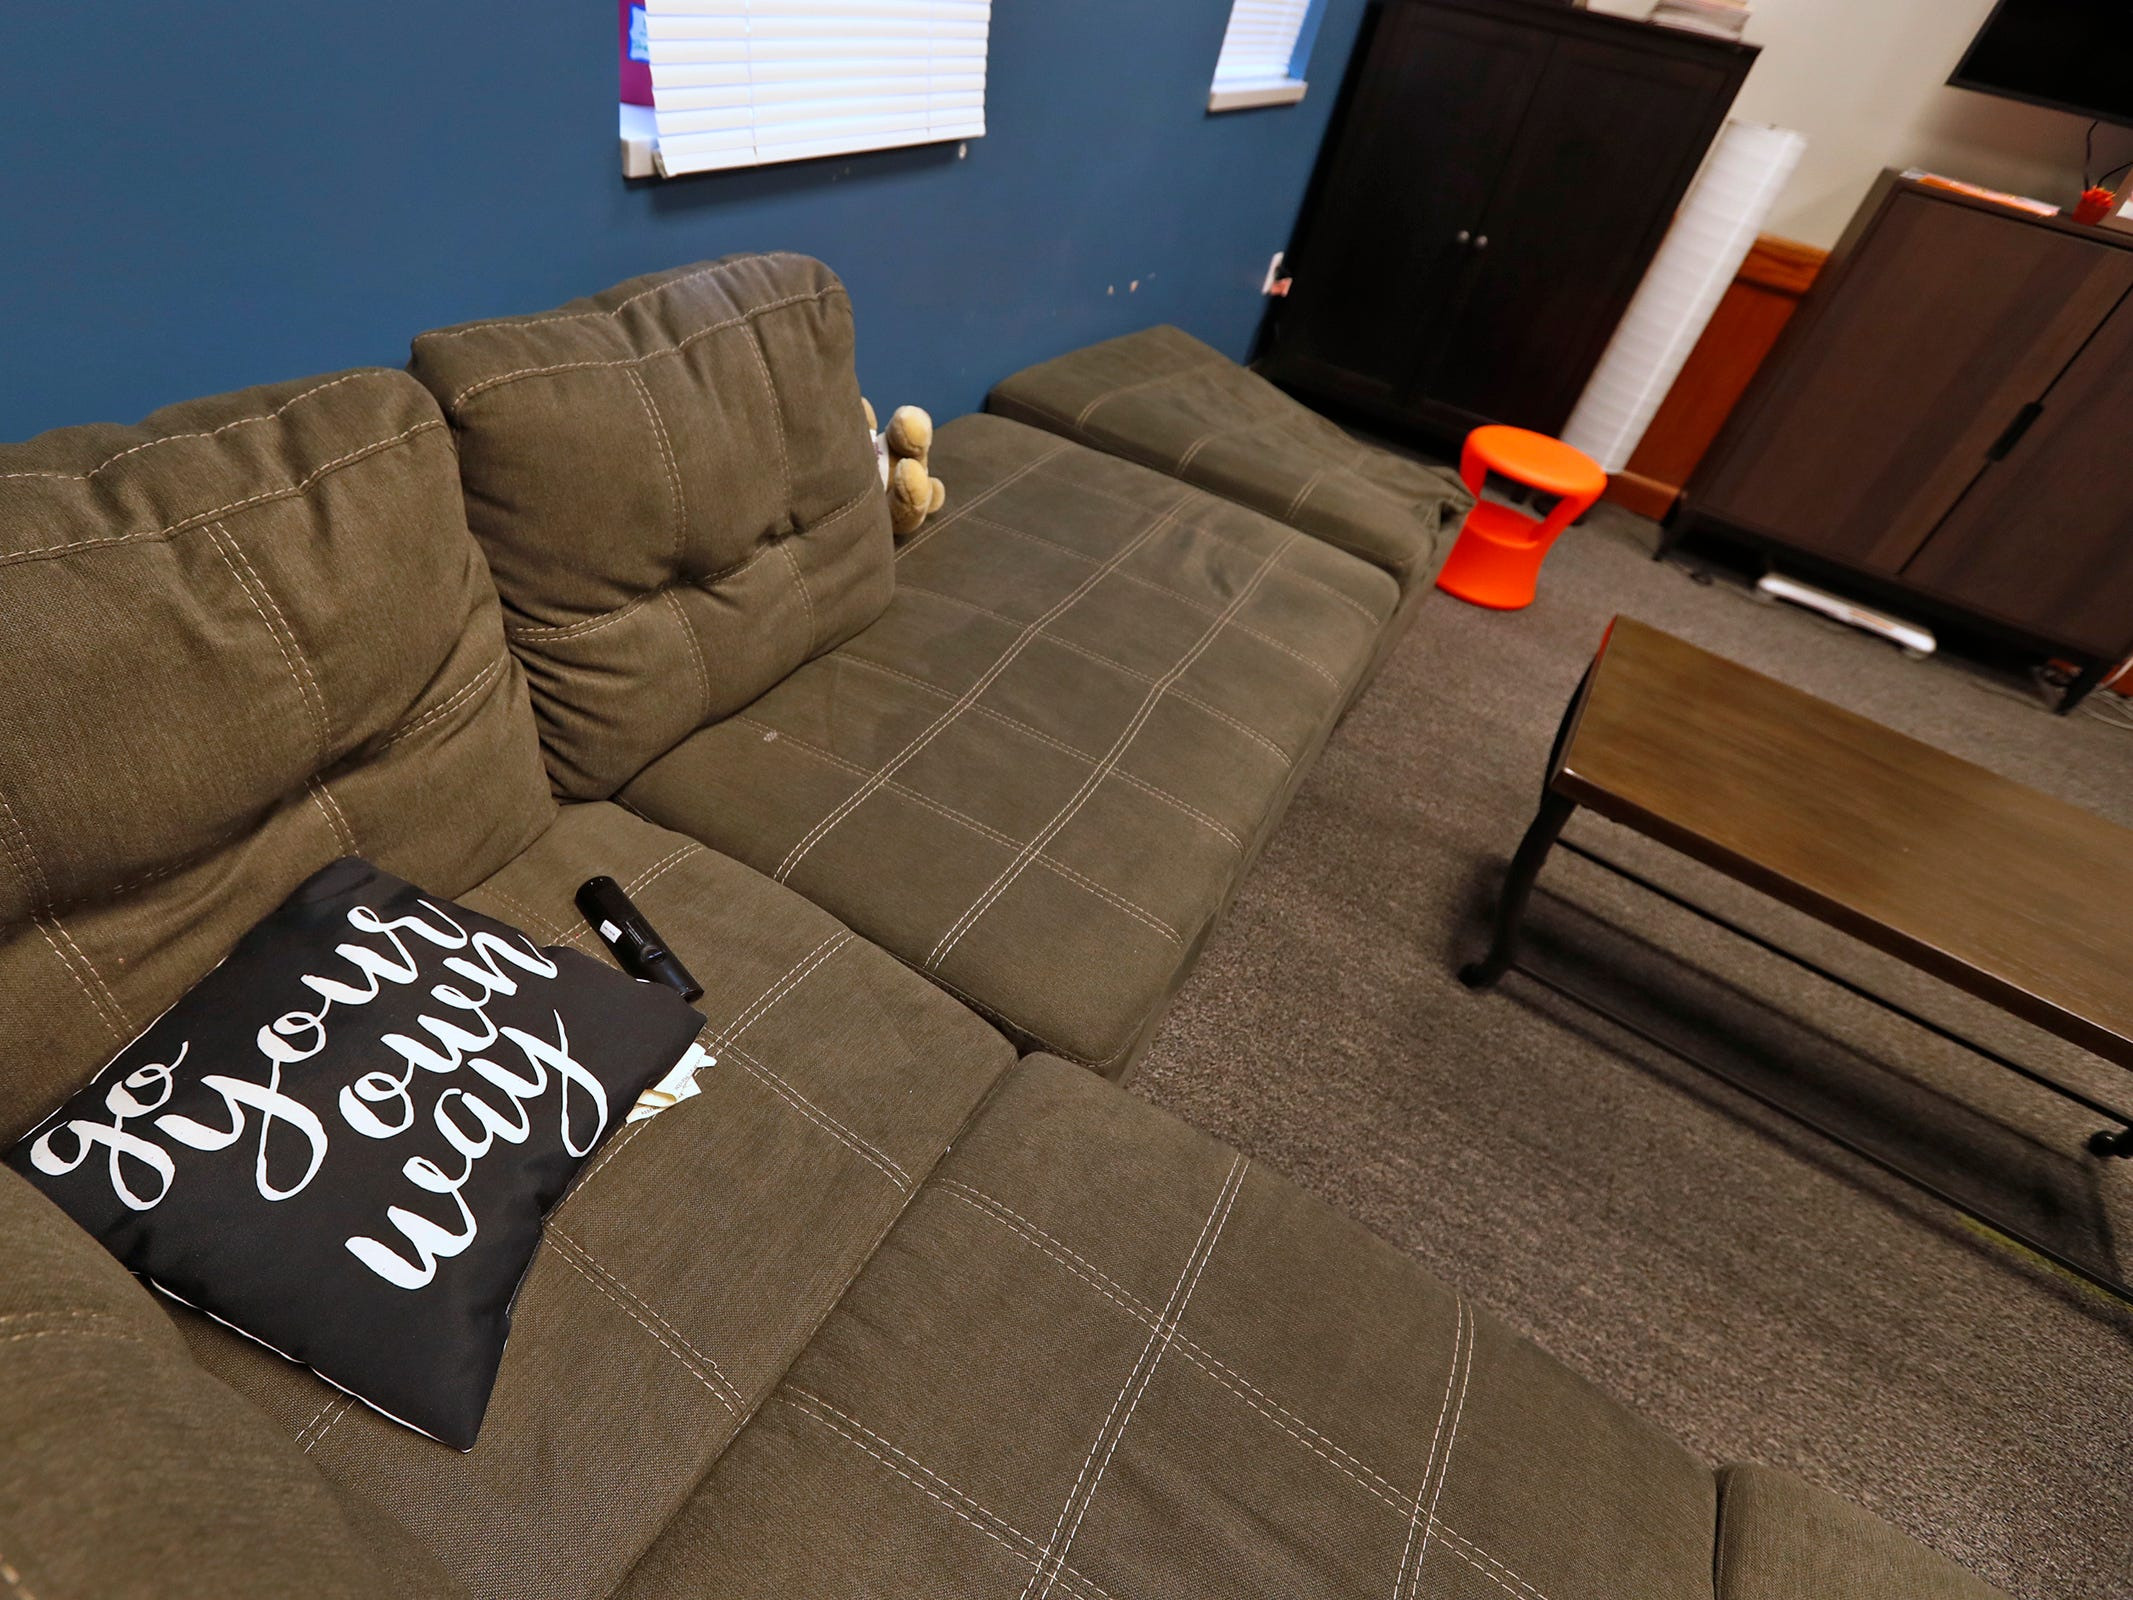 This is the Michael Overdorf and Amy Barragree Family Room, seen at the Indiana Youth Group building, Tuesday, Nov. 27, 2018.  The organization offers a safe drop-in center for LGBTQ+ youth, ages 12-20, and their straight ally friends, in the Indianapolis area.  Activities, tutoring, food and clothes pantries are included in the center.